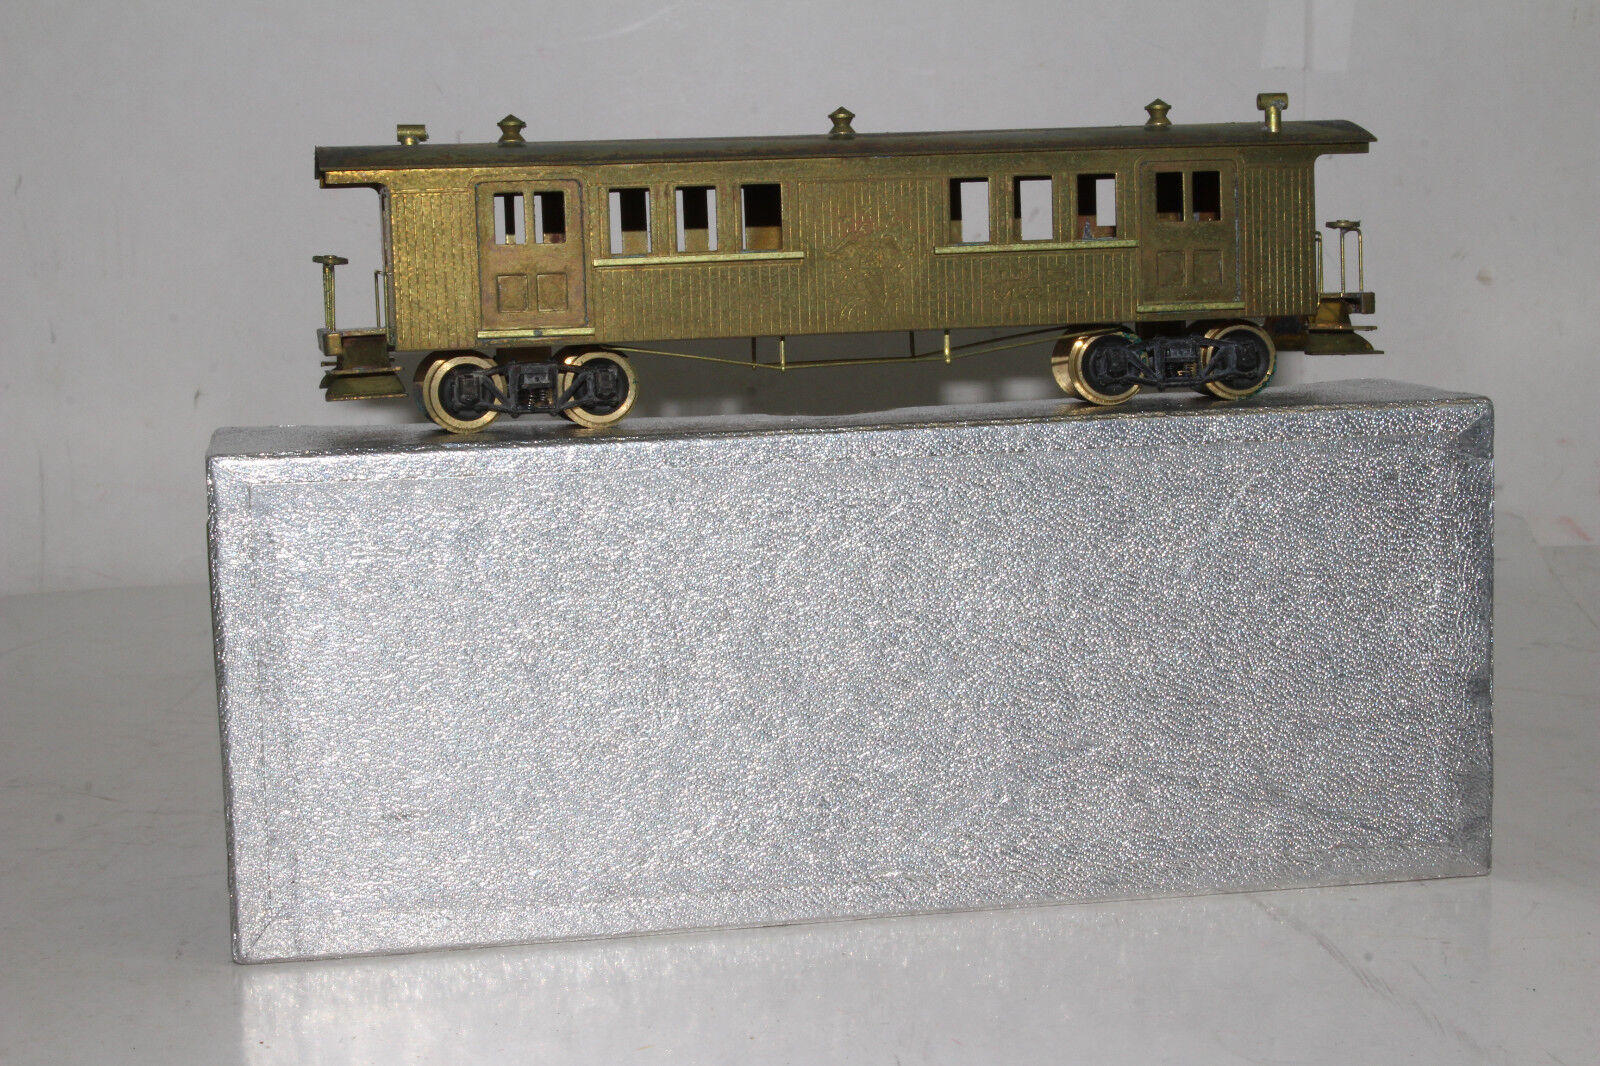 TAKARA HO SCALE BRASS 1863 RADIAL ROOF BAGGAGE PASSENGER CAR, BOXED,  4